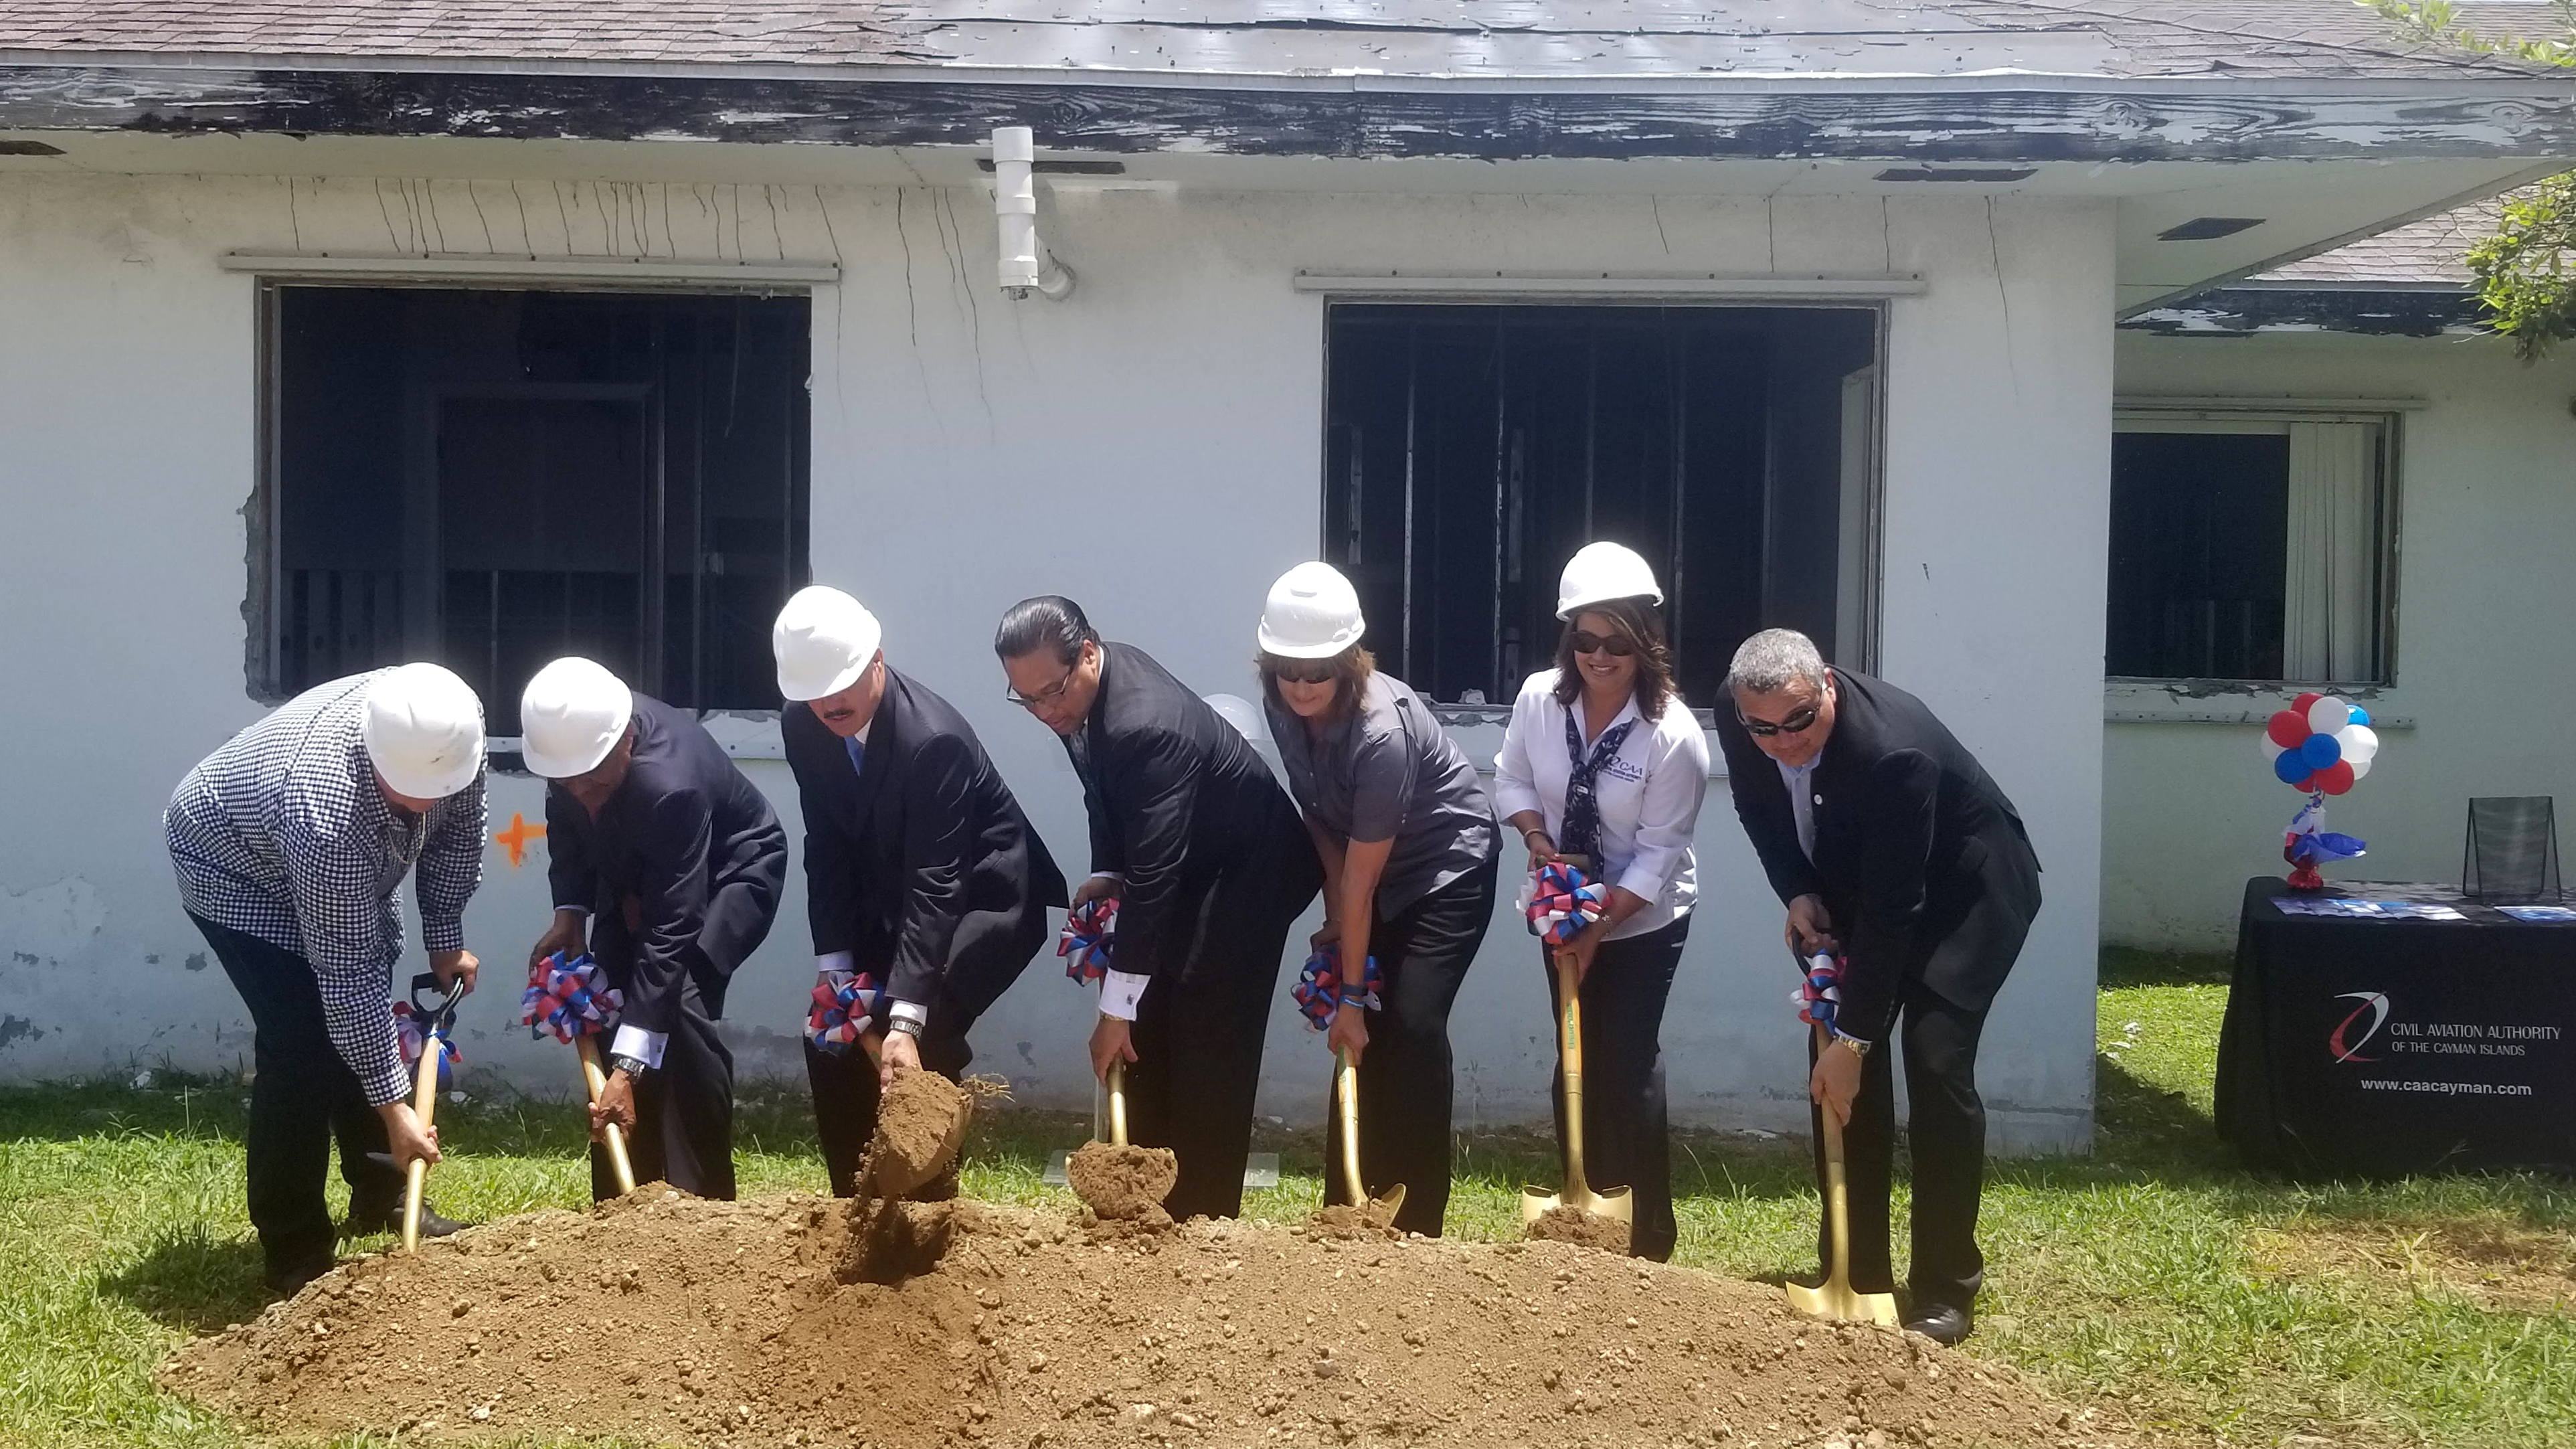 Civil aviation authority cayman islands groundbreaking ceremony